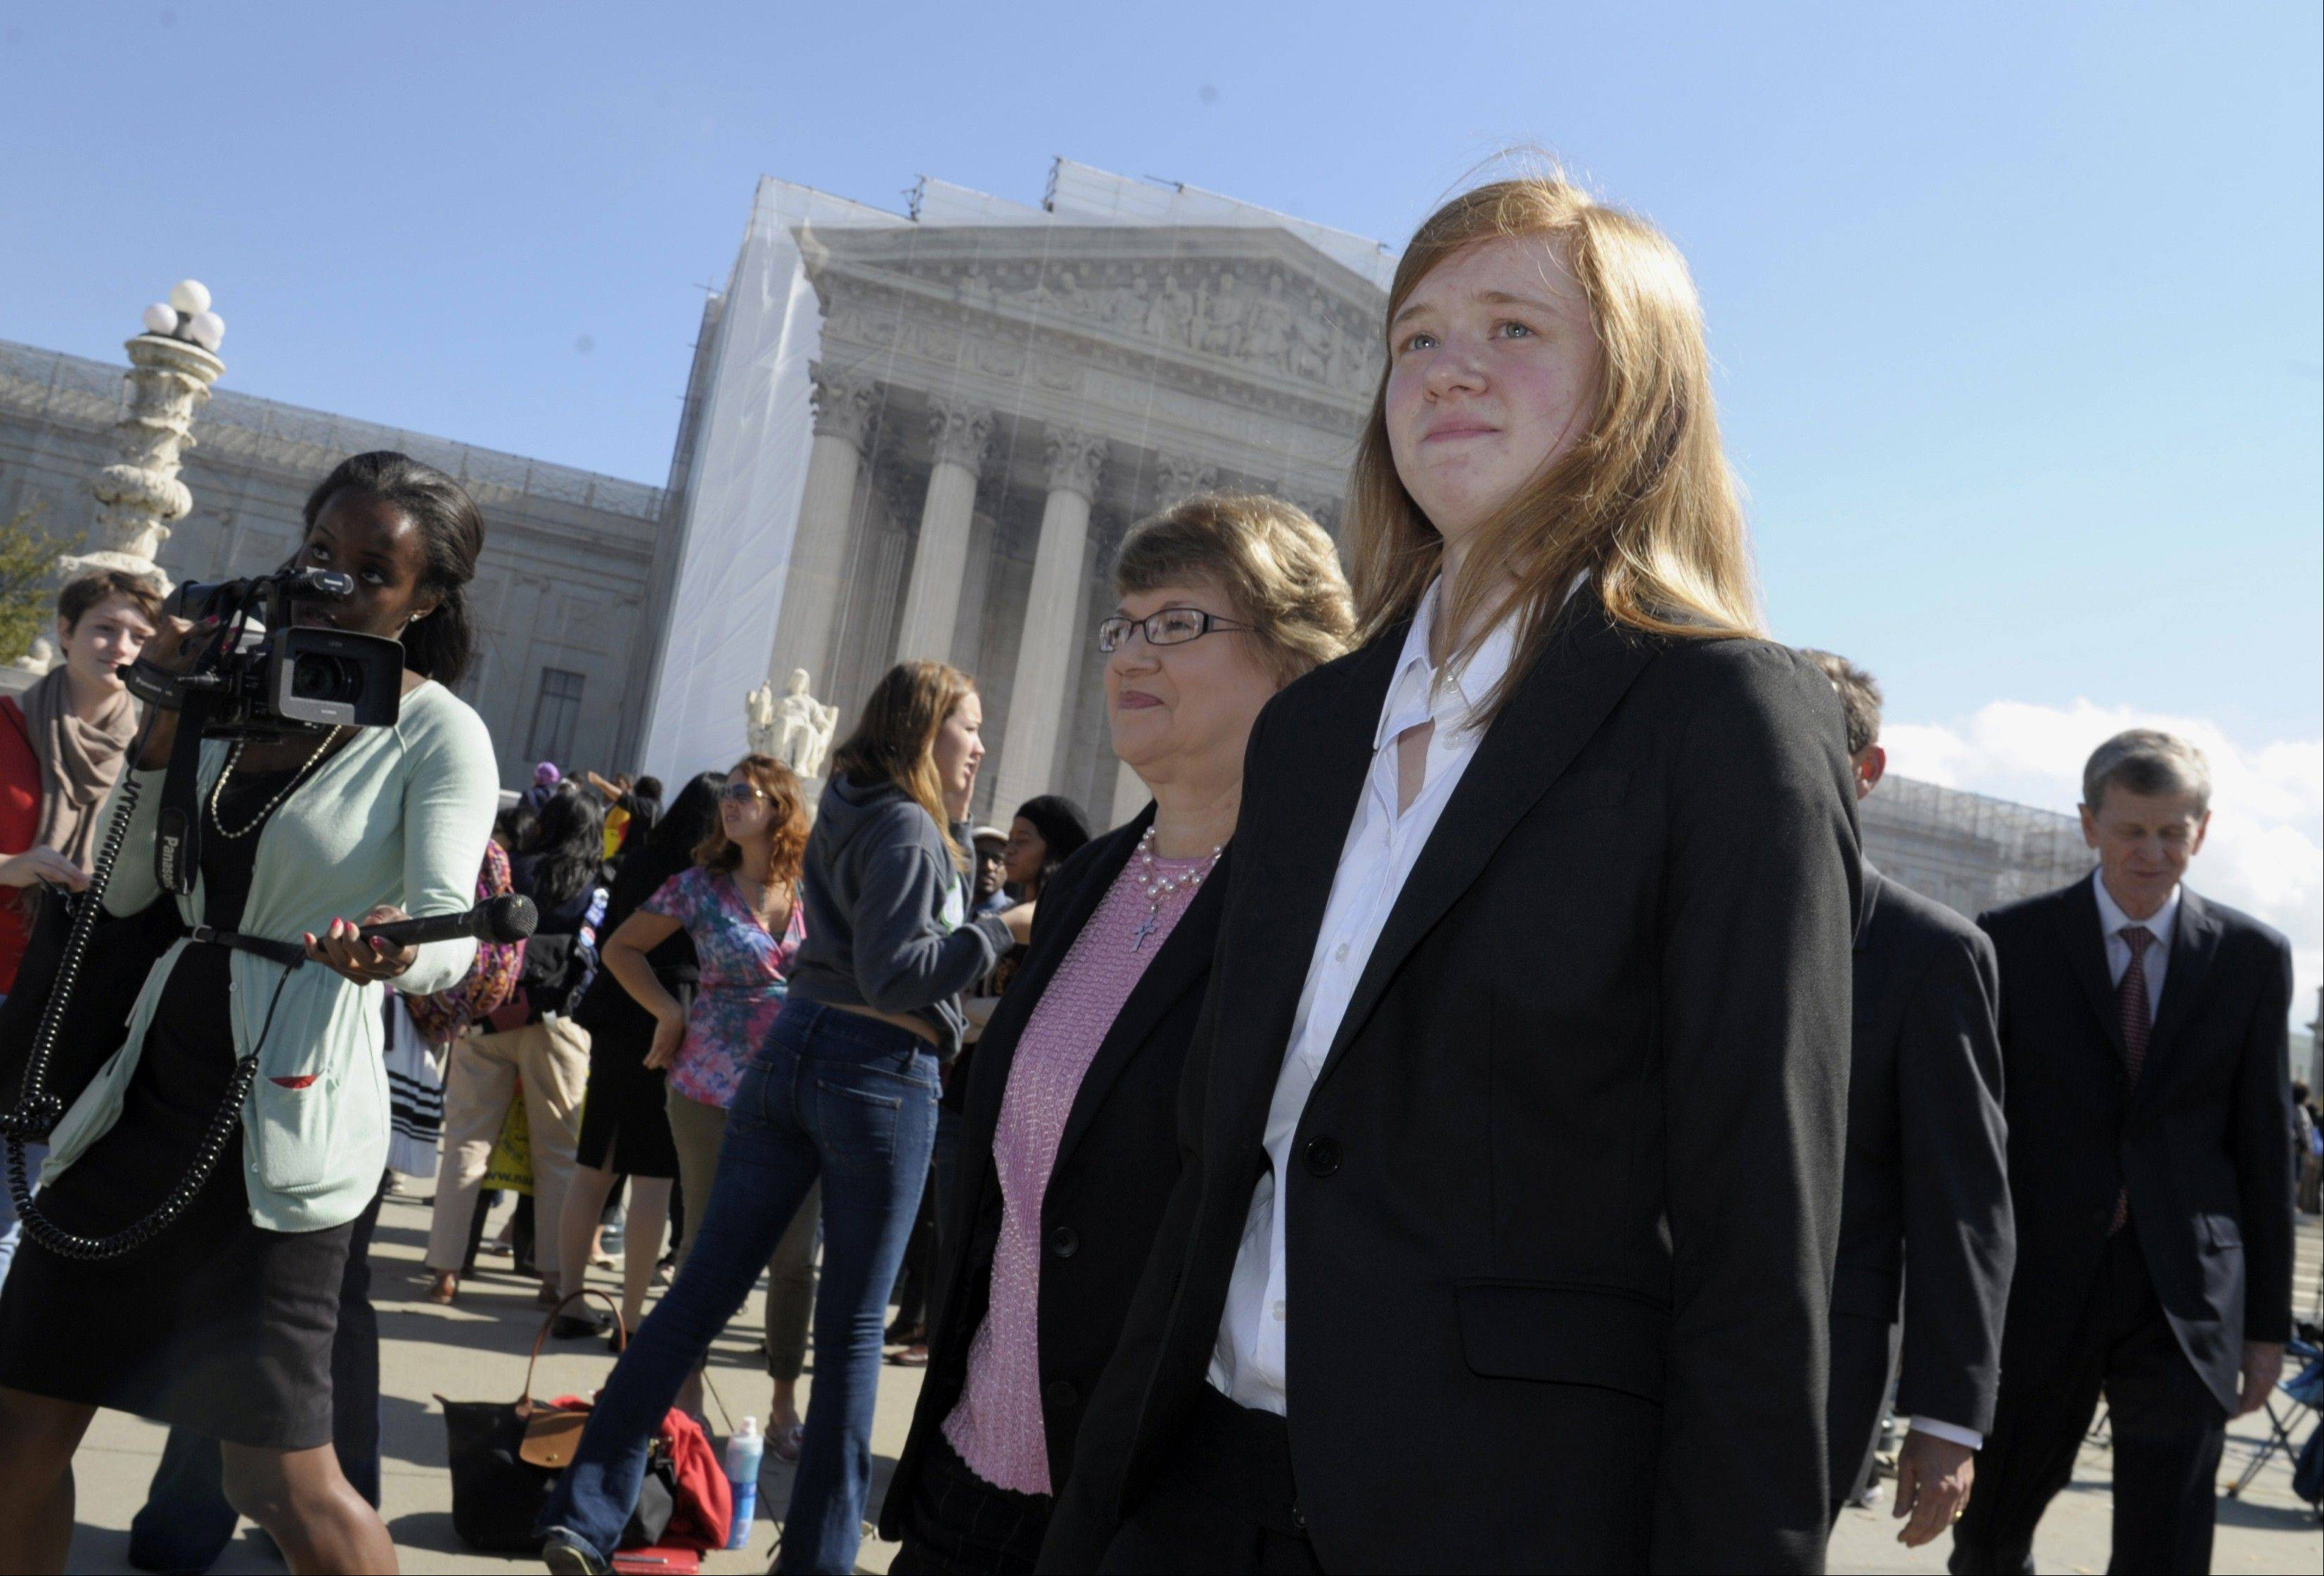 Abigail Fisher, right, who sued the University of Texas, walks outside the Supreme Court in Washington Monday. The Supreme Court has sent a Texas case on race-based college admissions back to a lower court for another look.